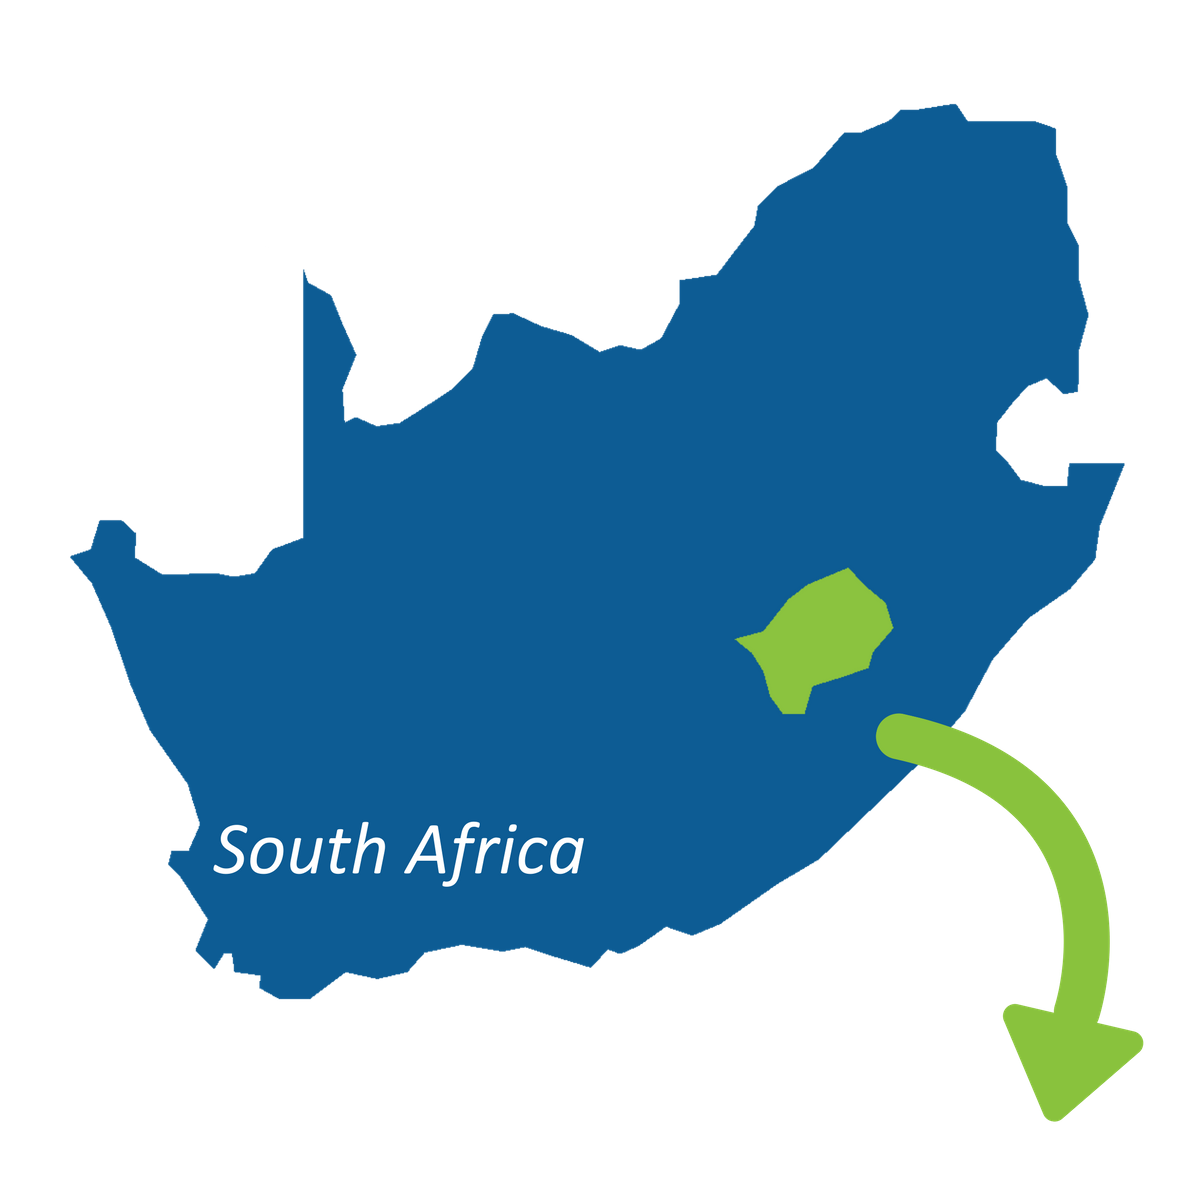 map of south africa showing lesotho